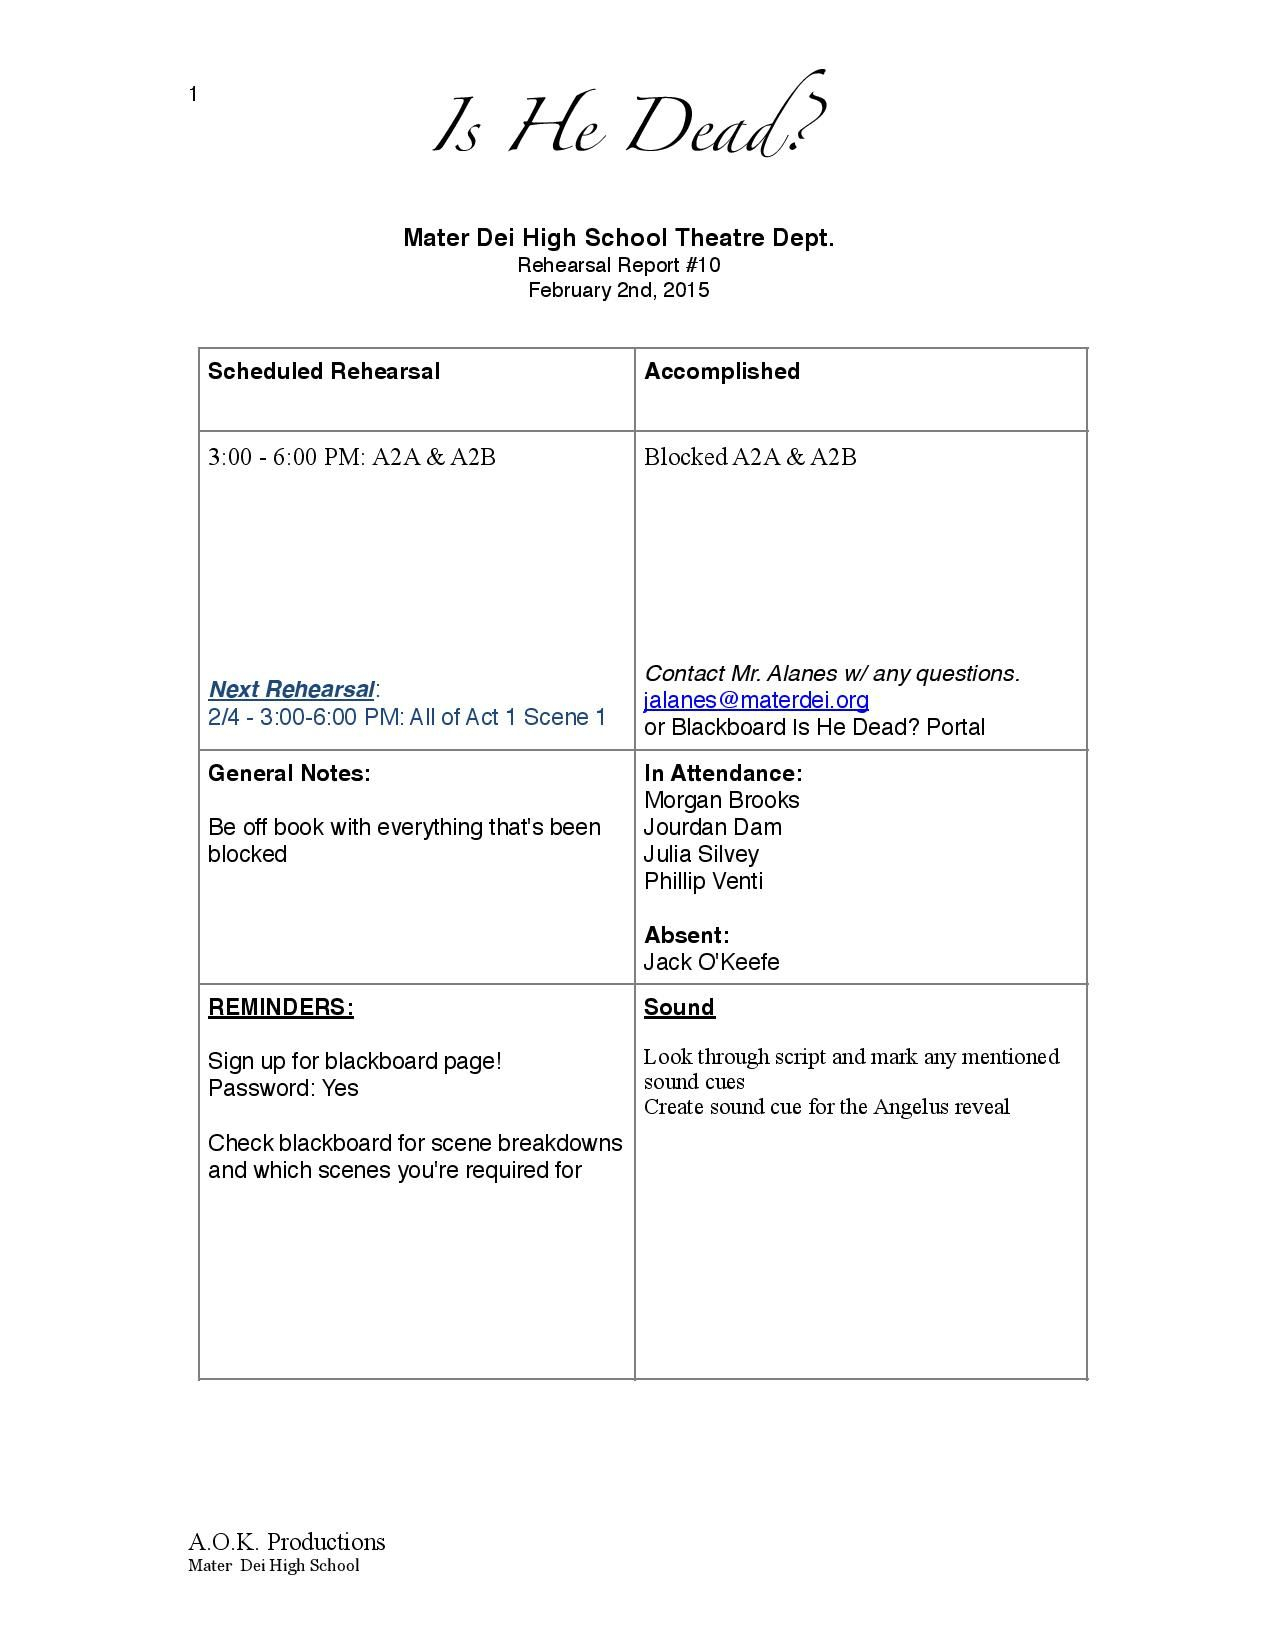 Page 1 Of Is He Dead? Rehearsal Report Example | Stage With Rehearsal Report Template